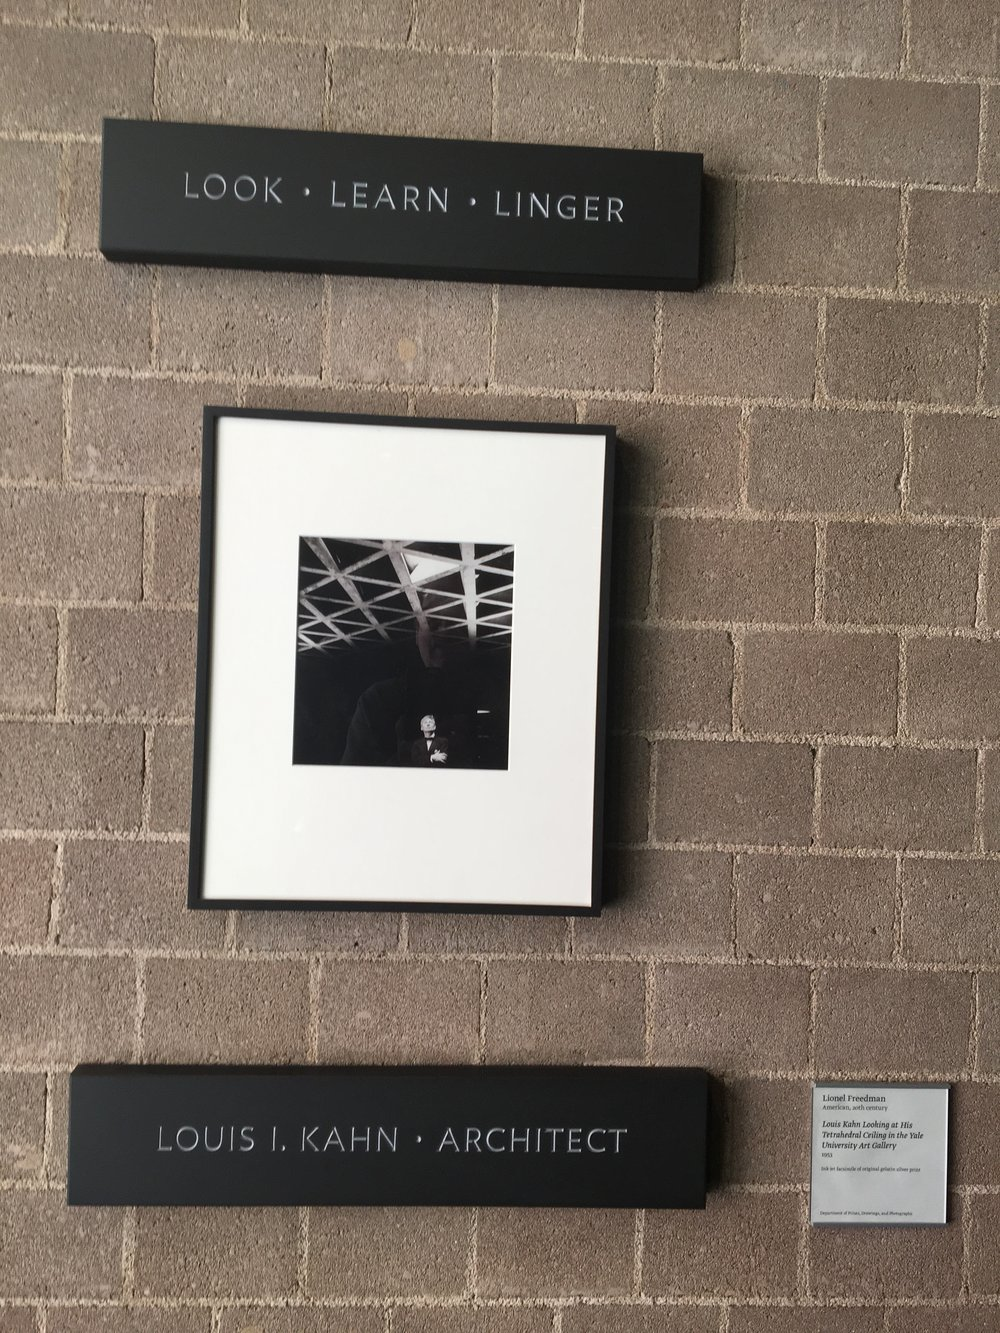 Yale Art Gallery, Kahn plaque